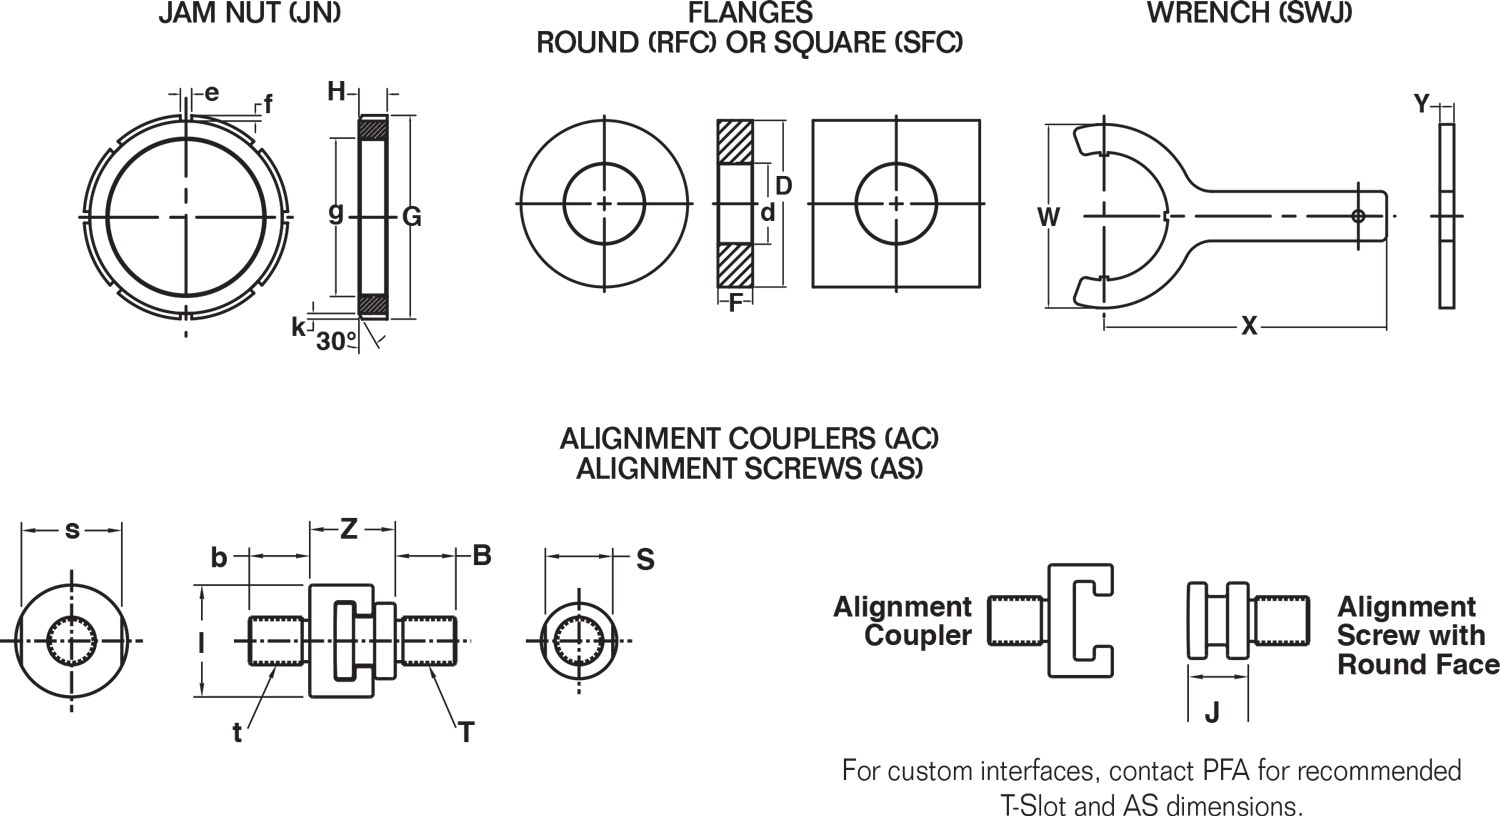 PFA KOR-LOK Locking Cylinder Accessories - dimensions